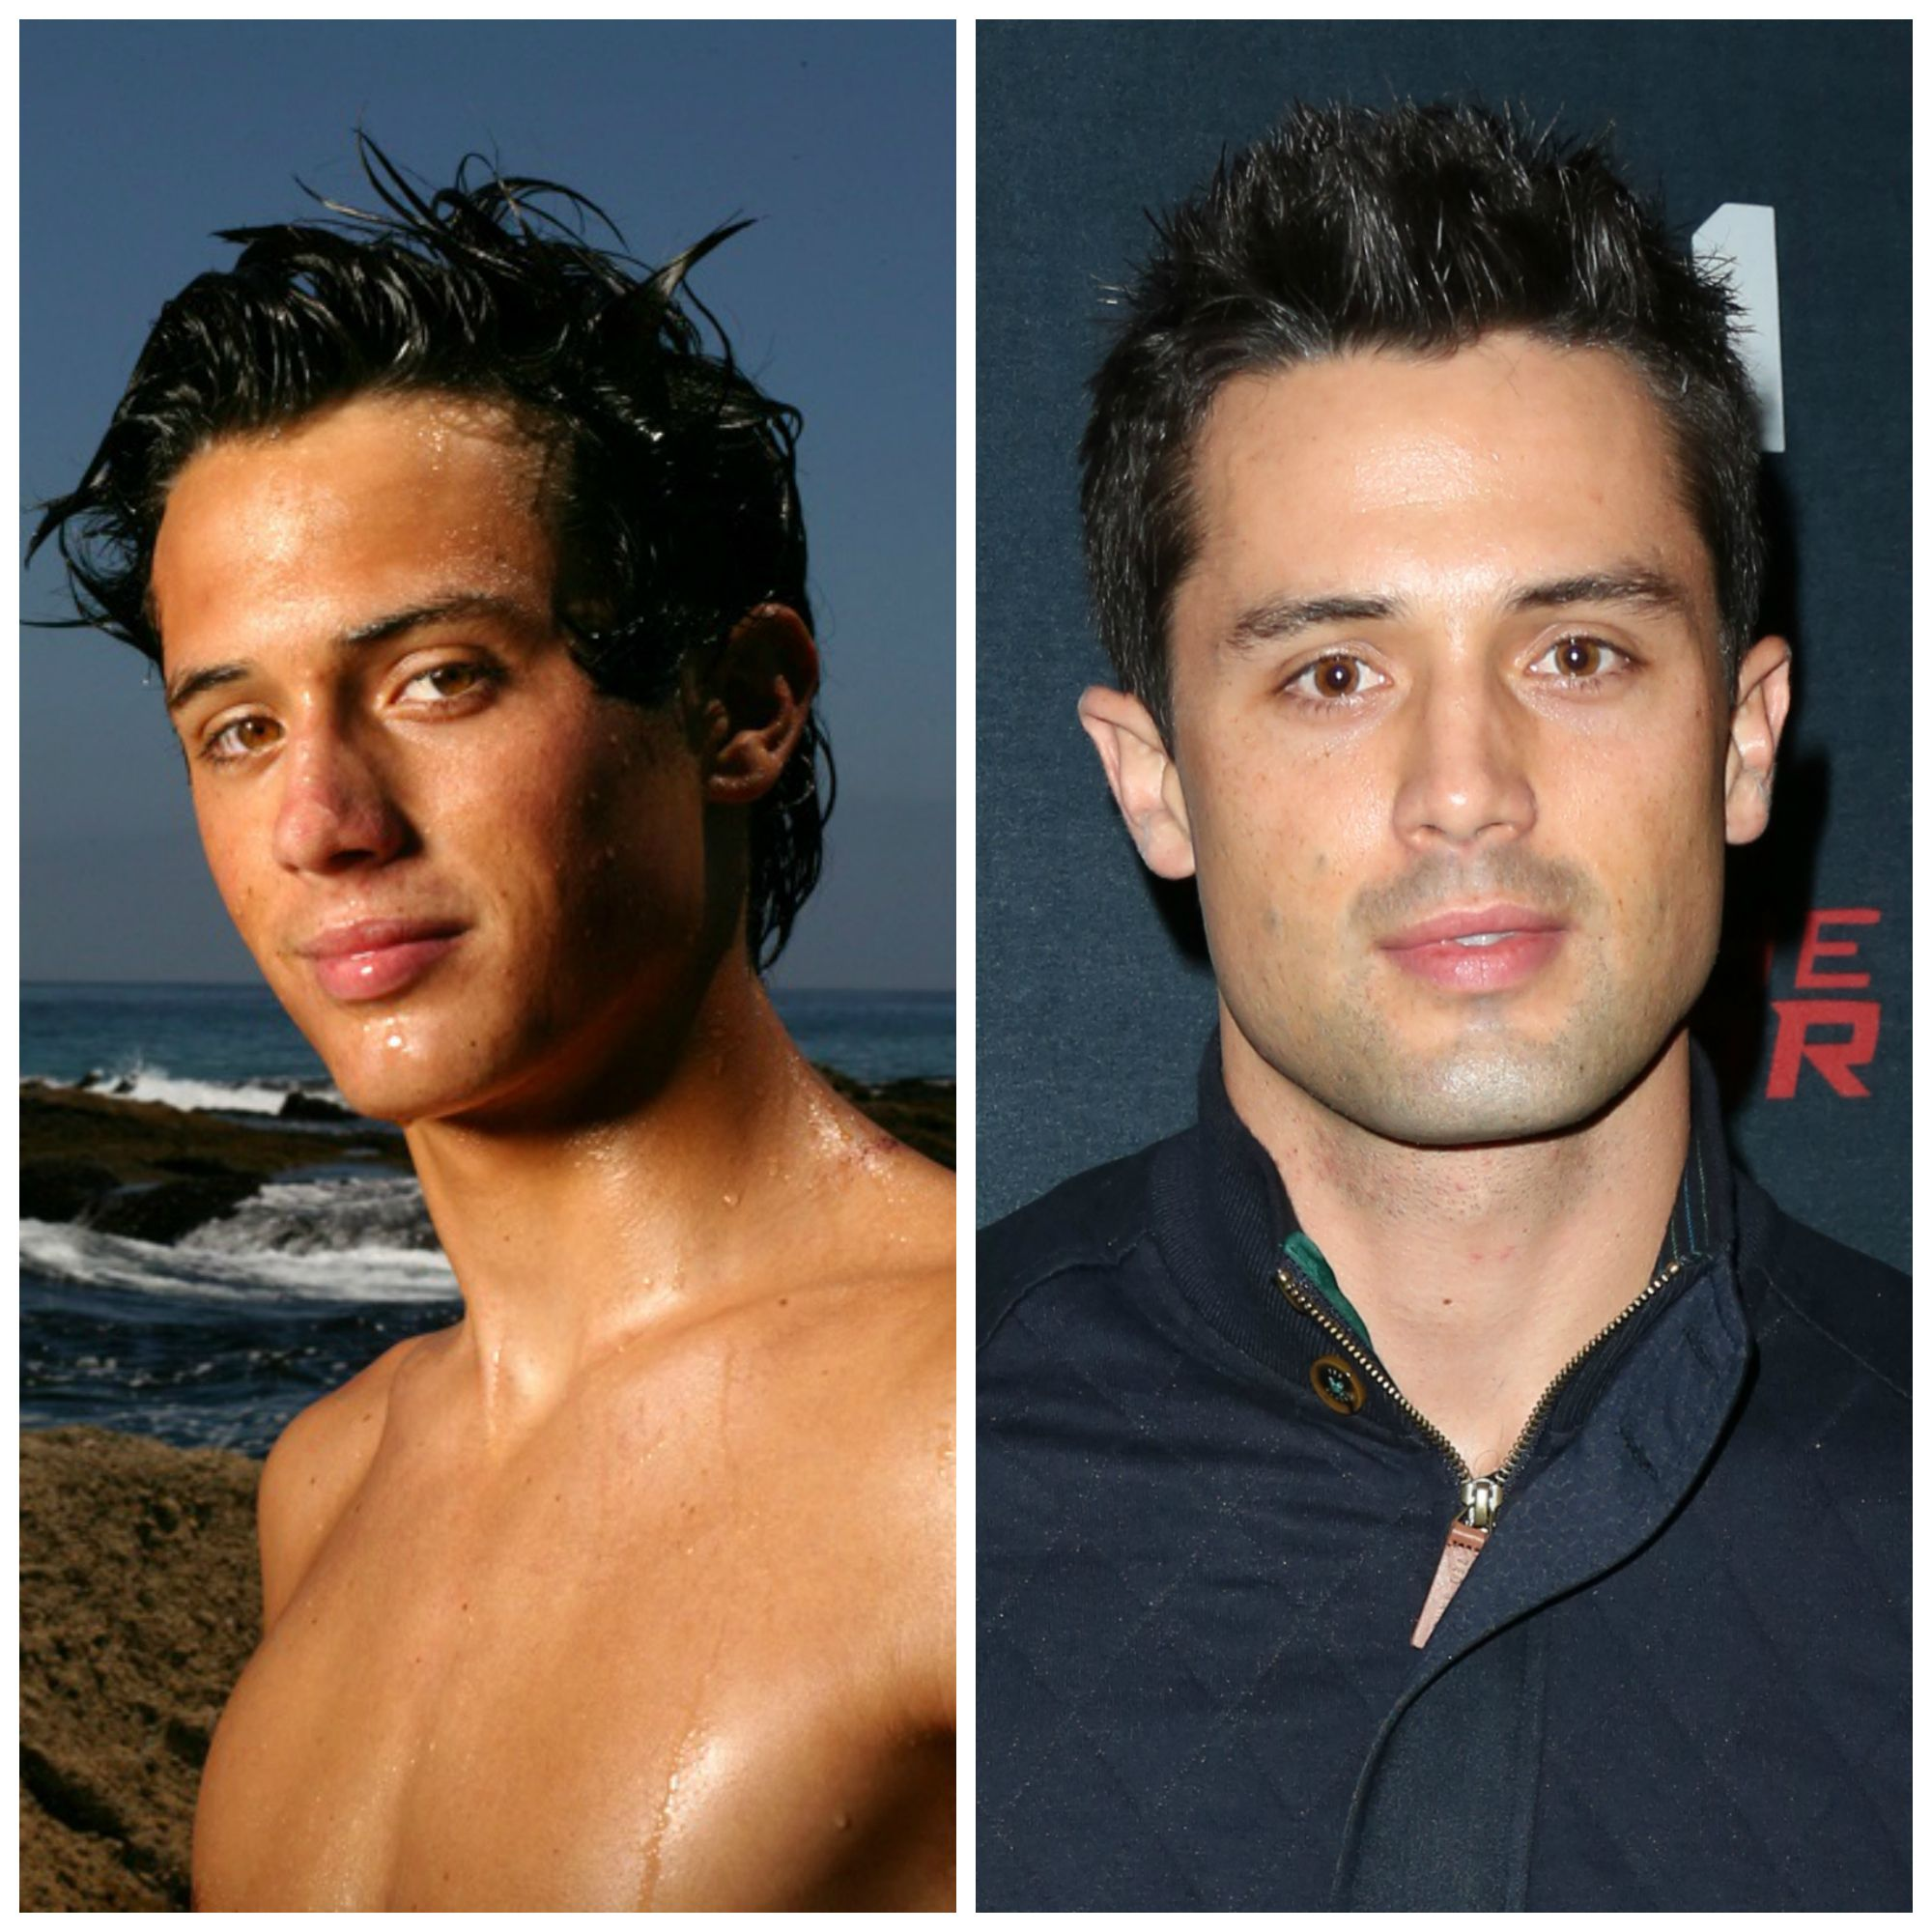 Stephen from laguna beach who is he dating